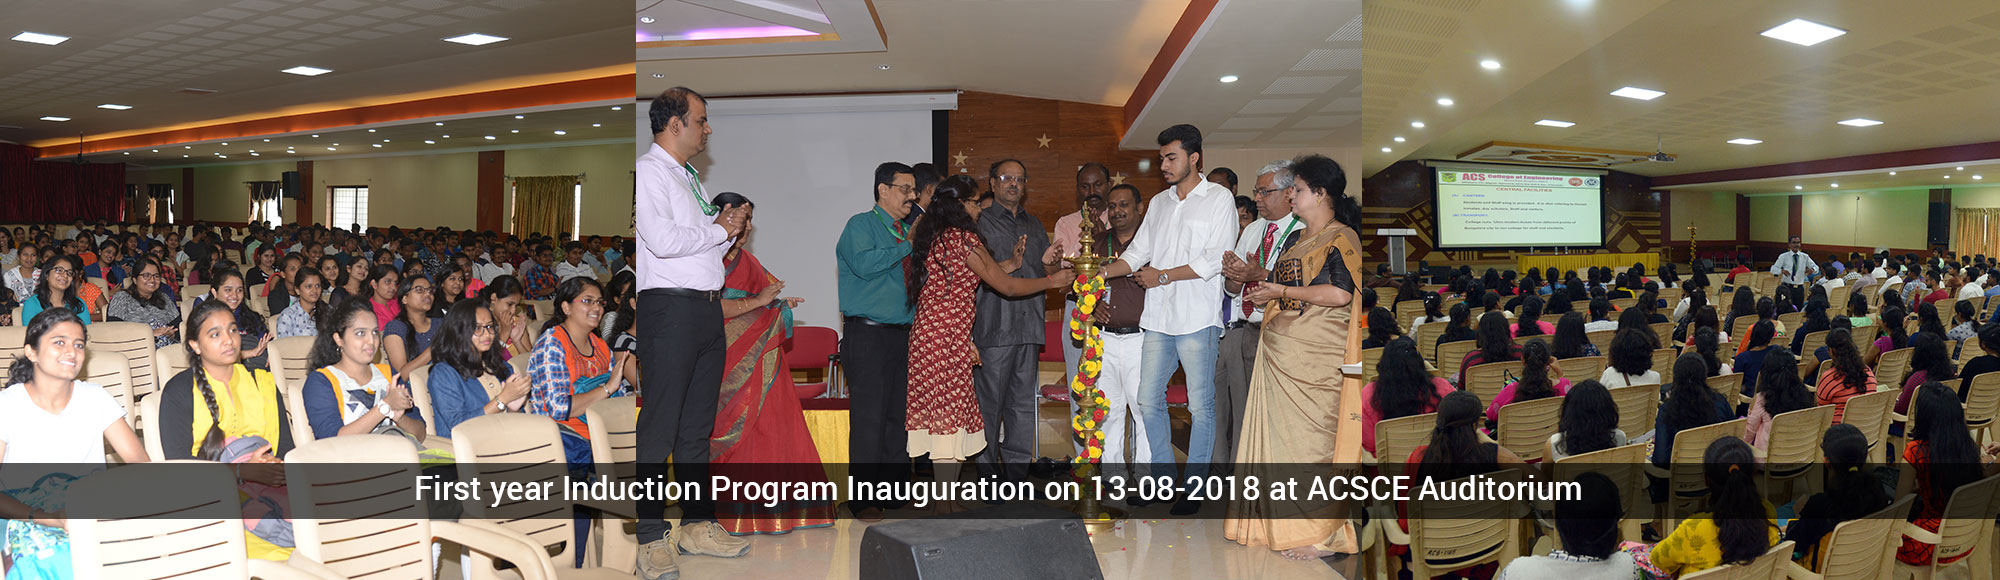 Induction Program Inauguration